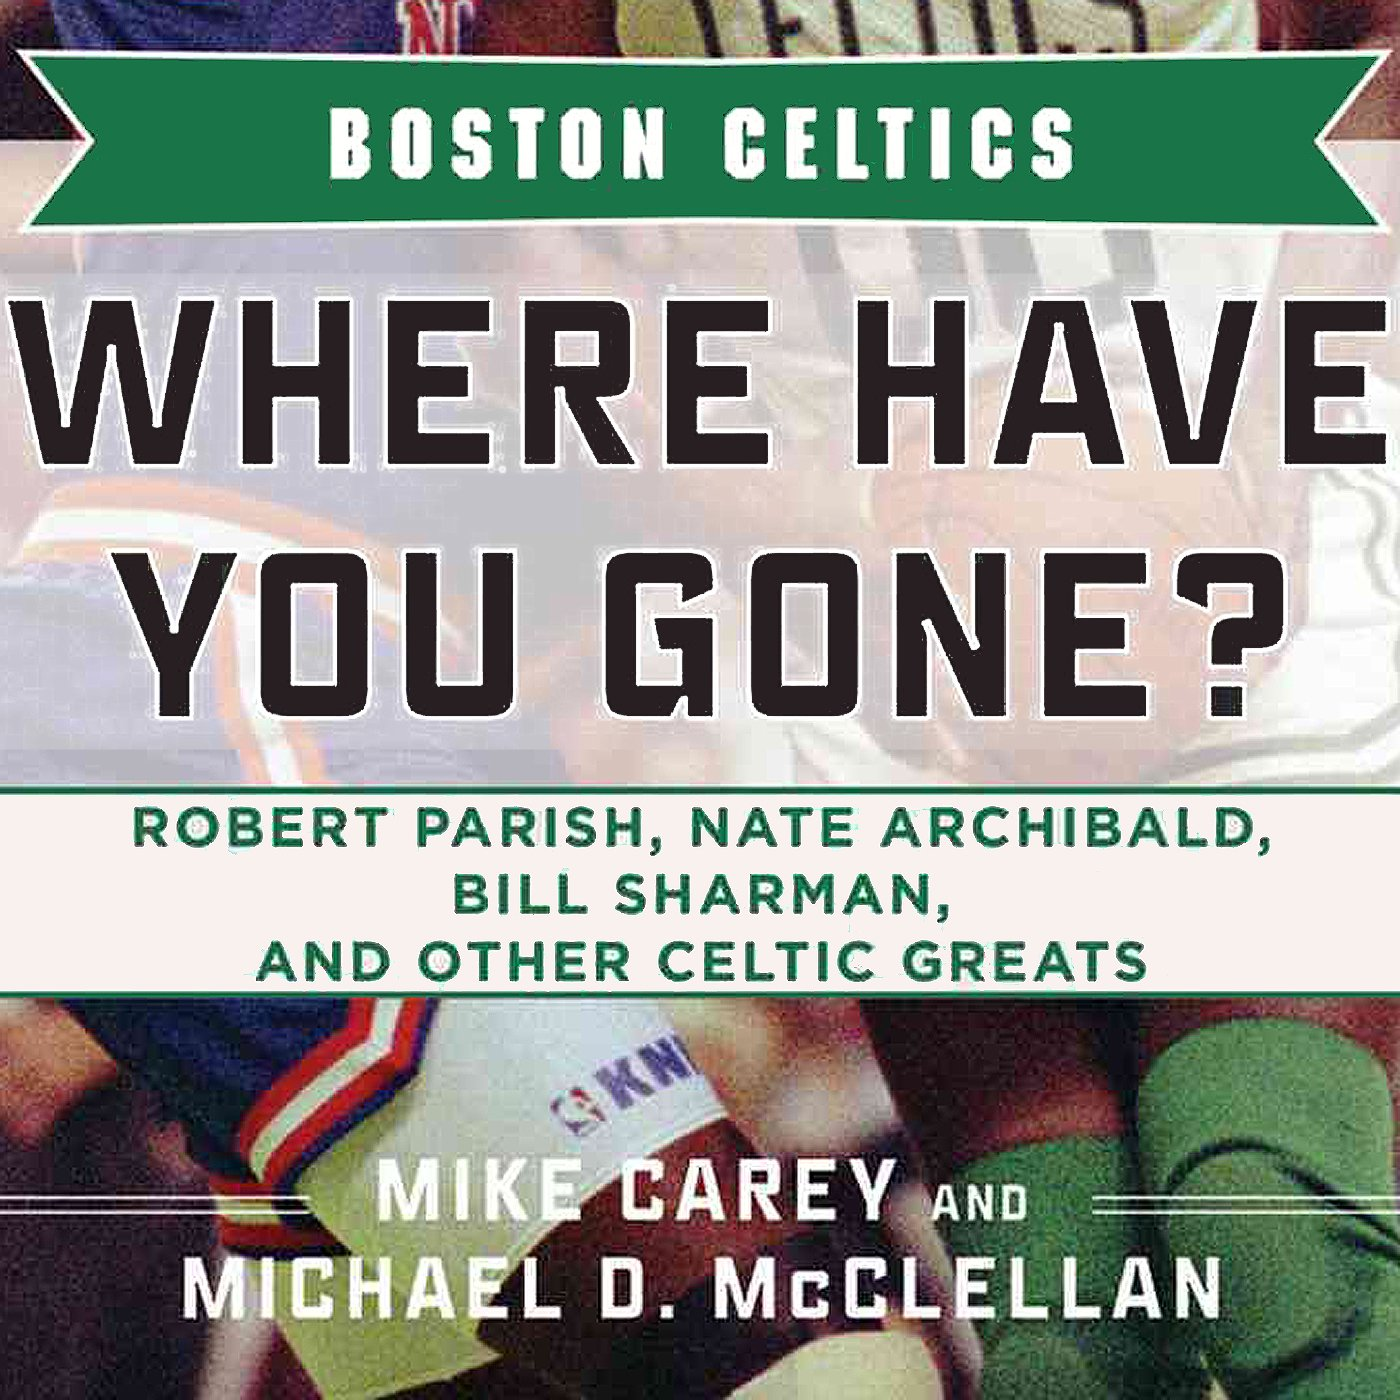 Boston Celtics: Where Have You Gone? Robert Parish, Nate Archibald, Bill Sharman, and Other Celtic Greats